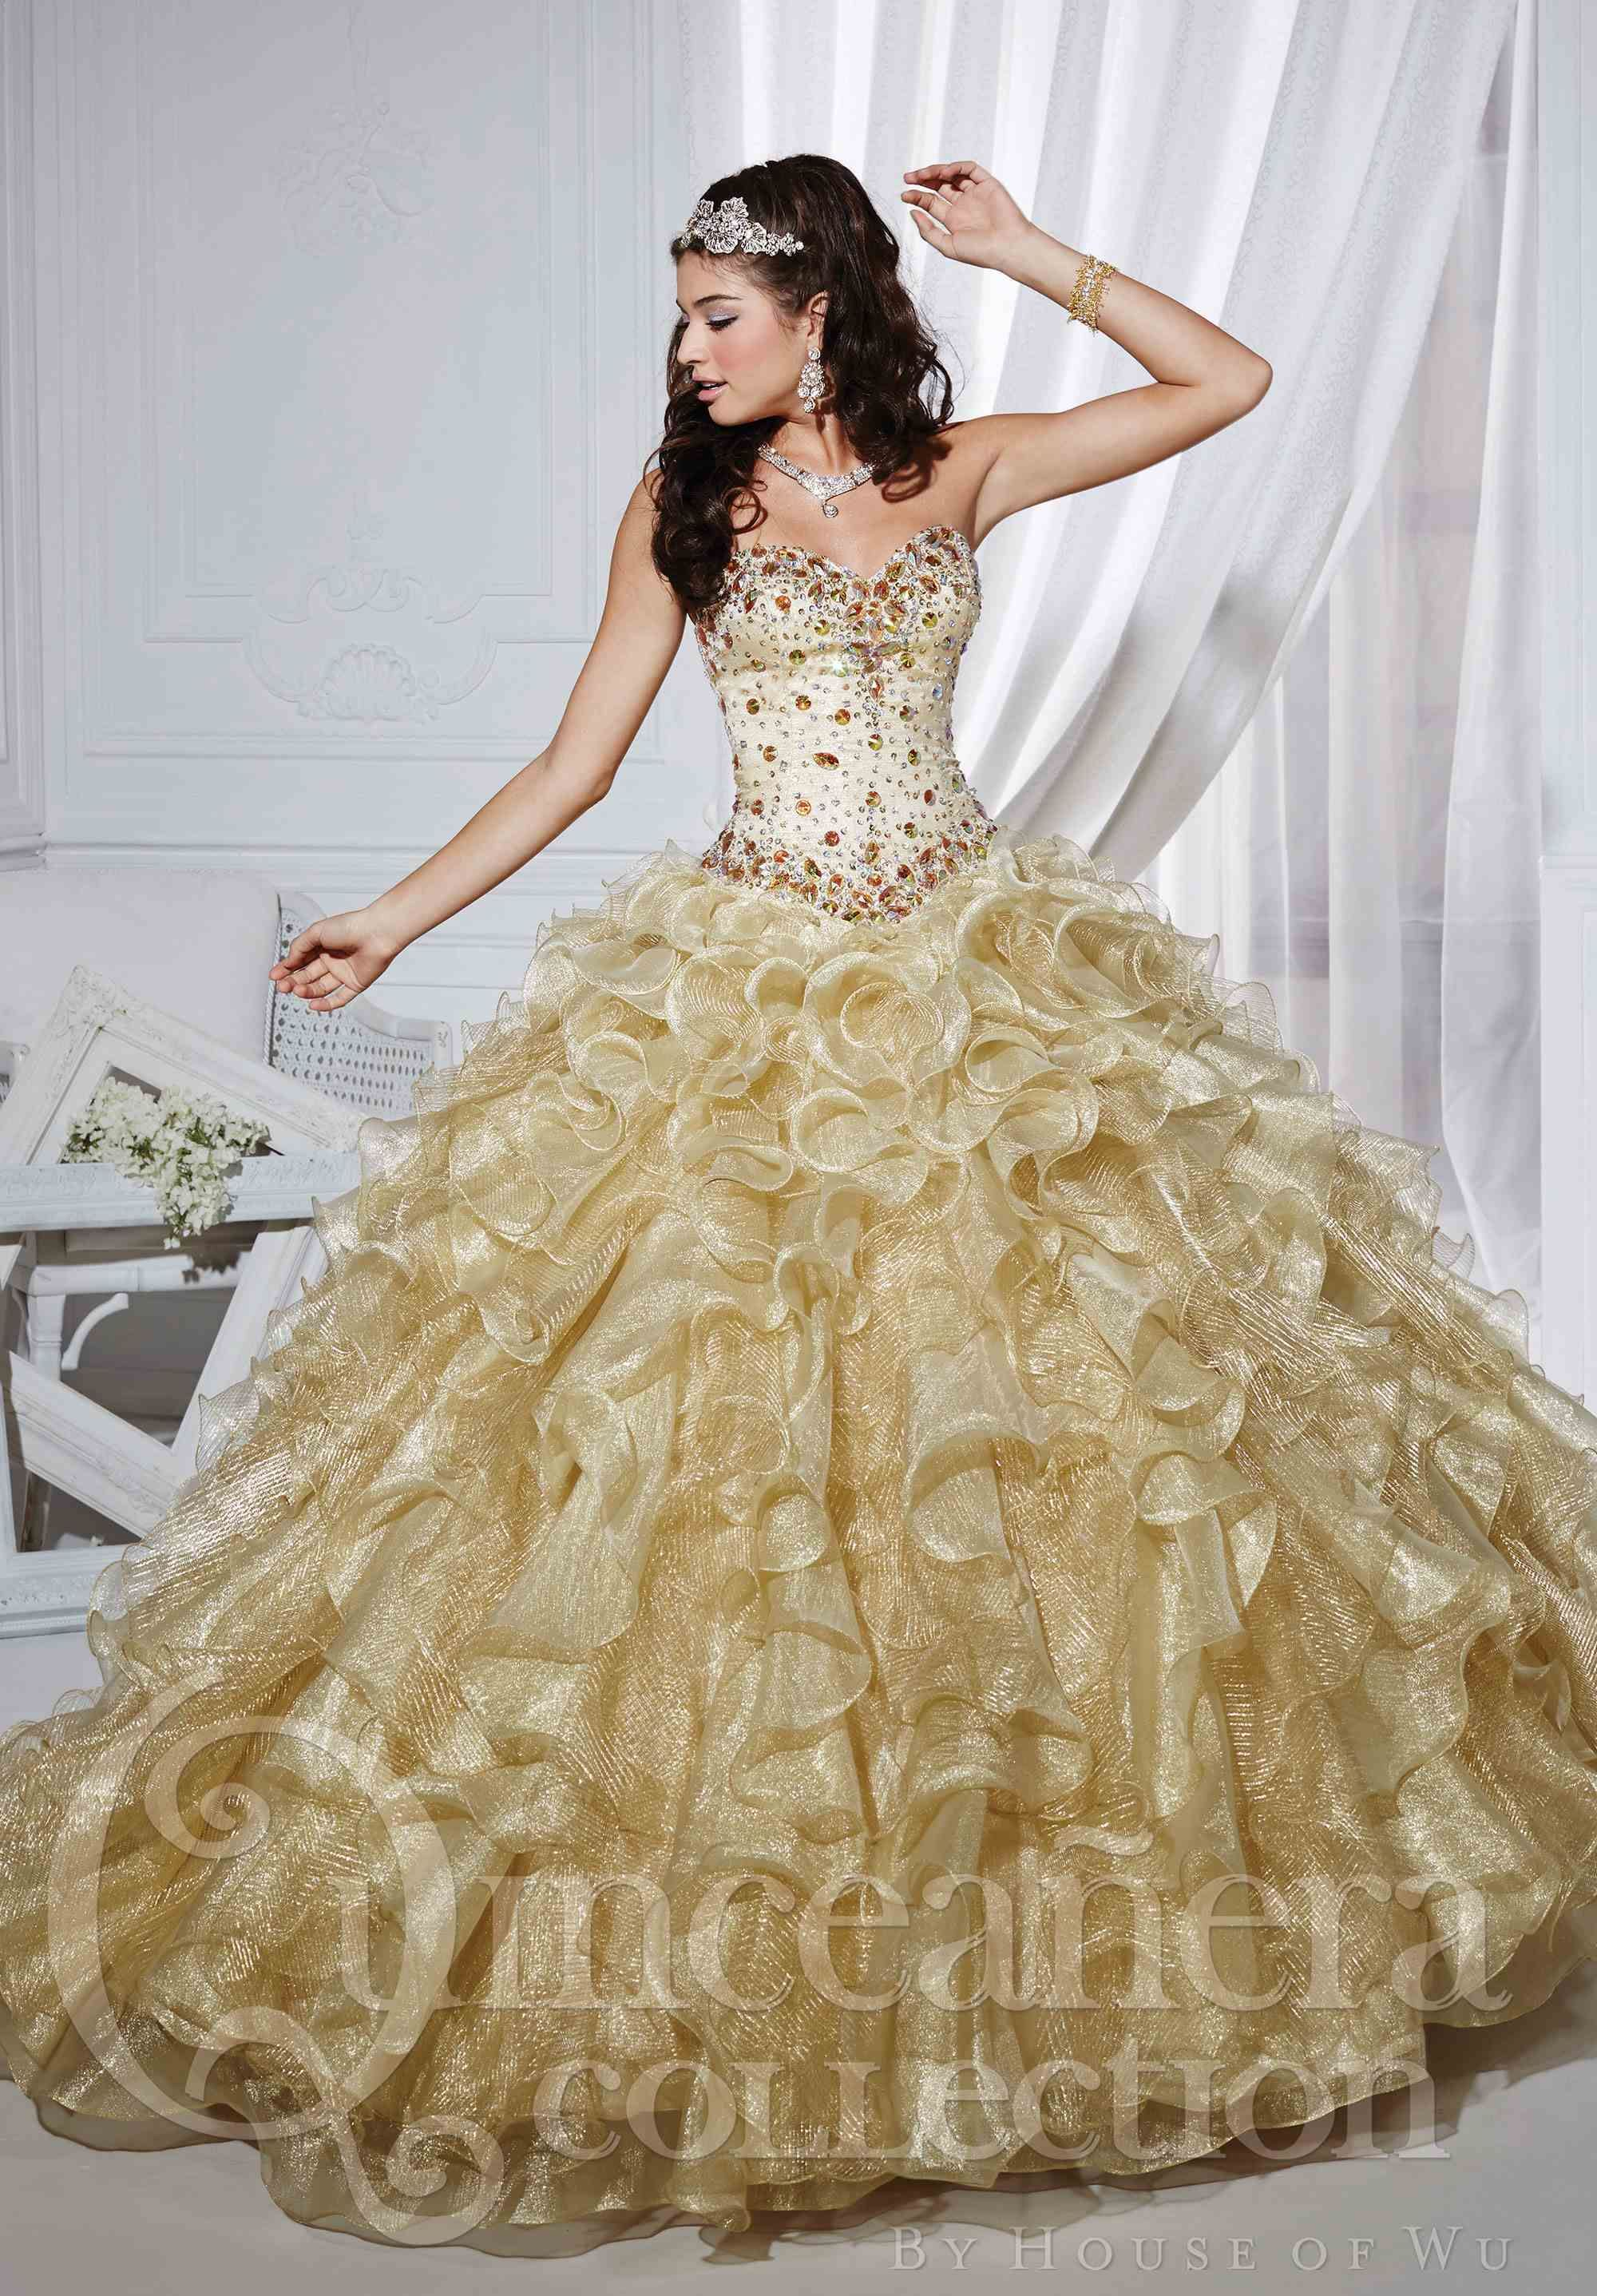 Pink And Gold Quinceanera Dresses Google Search Quinceanera Dresses Quince Dresses Gowns [ 2875 x 2000 Pixel ]